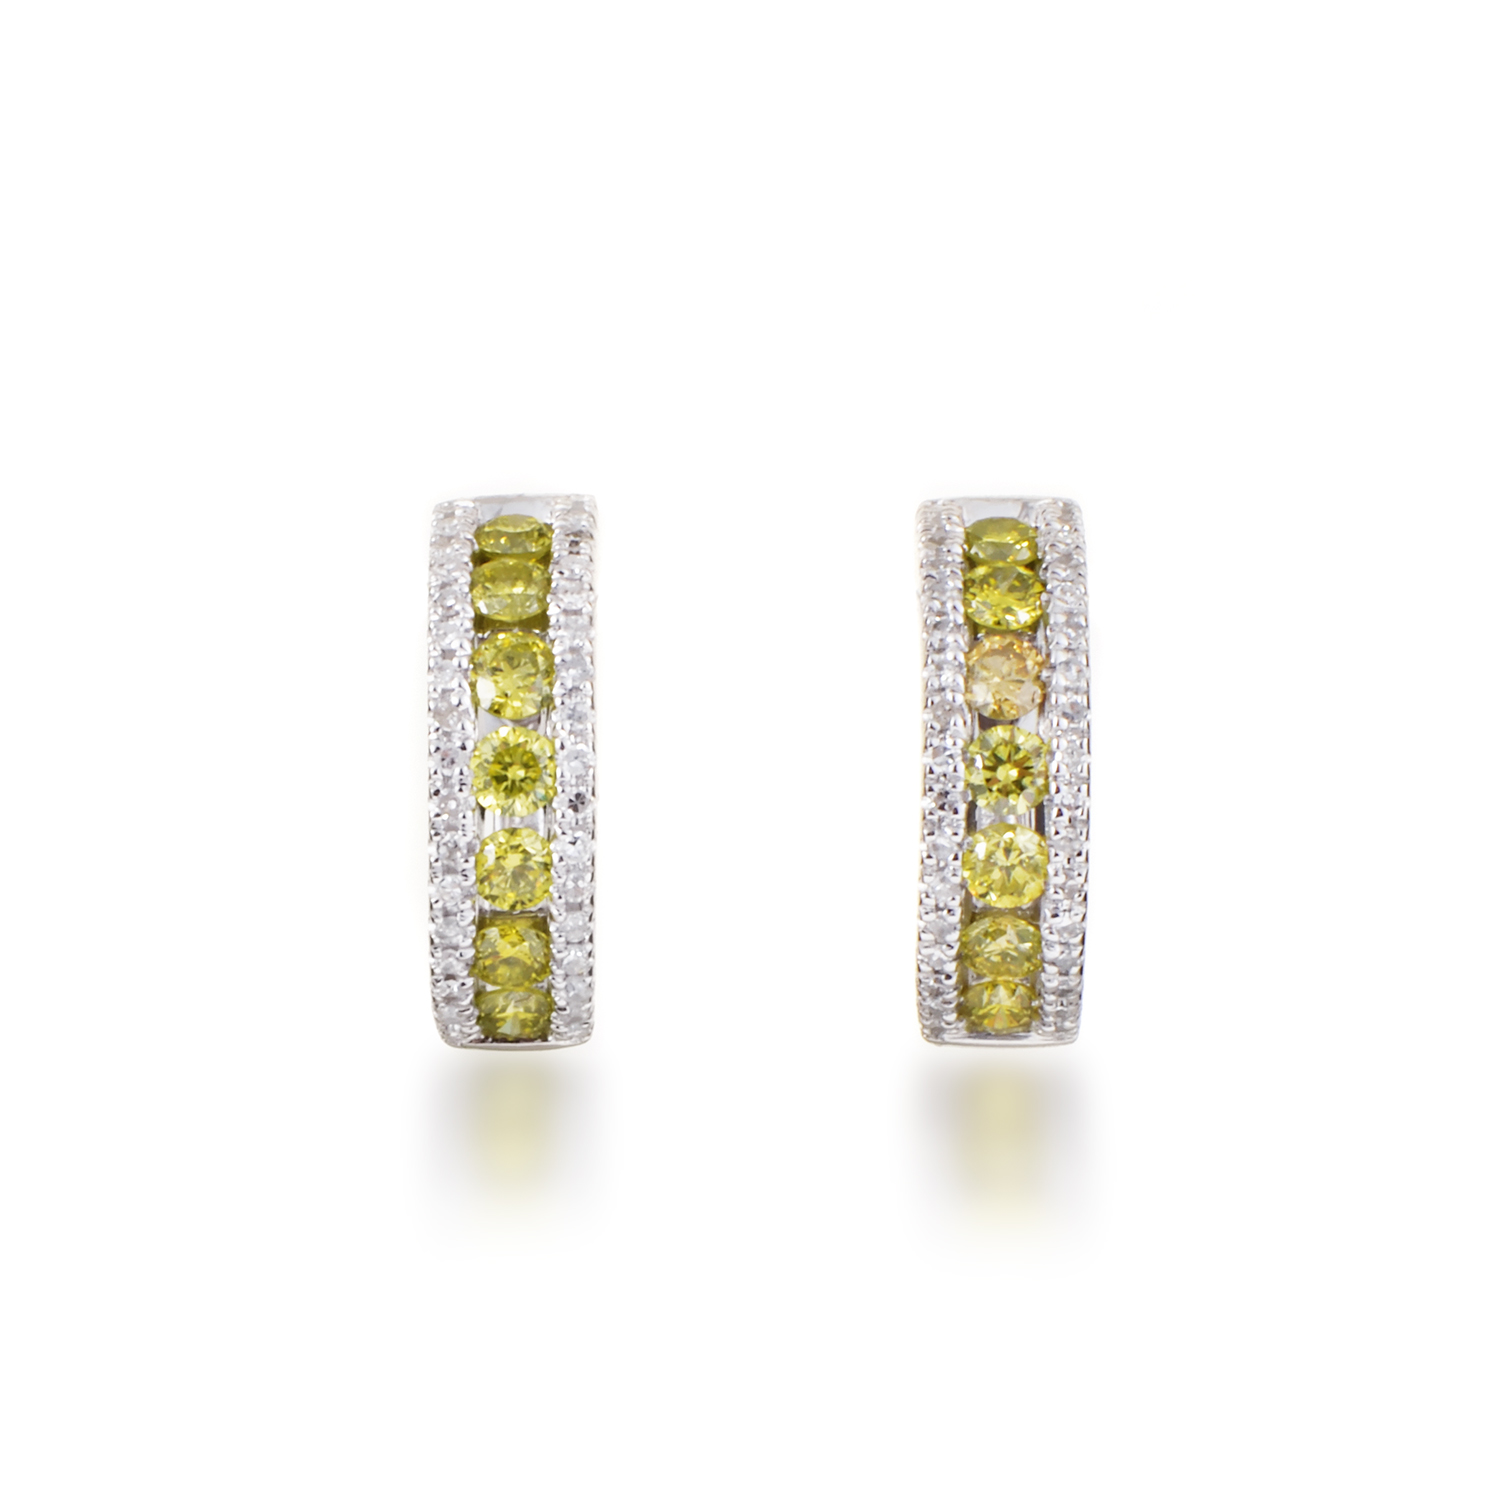 Women's 14K White Gold Yellow & White Diamond Hoop Earrings AER-12569W